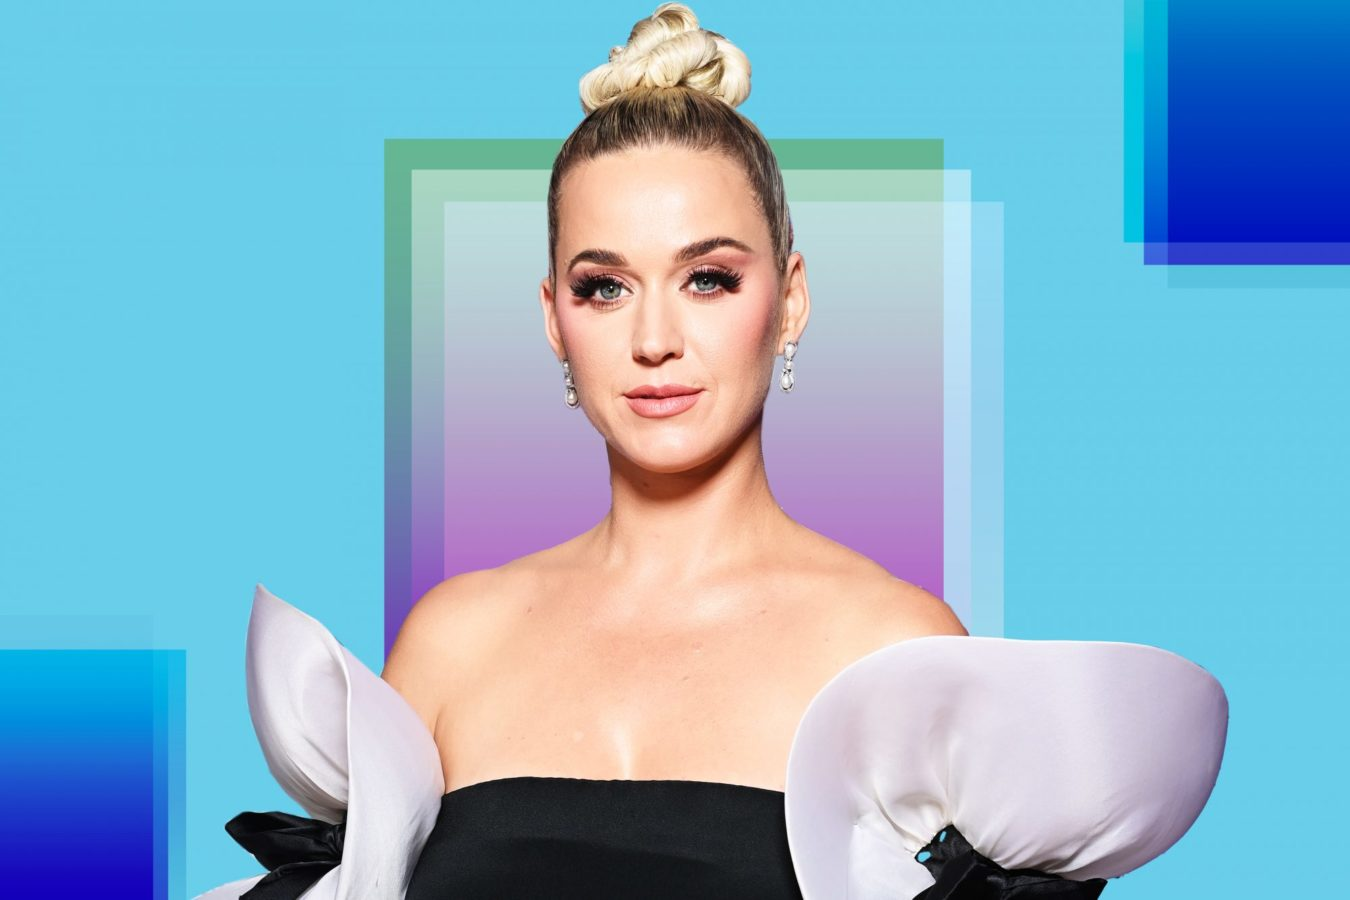 Katy Perry opened up about her 'insane' early days of motherhood with daughter Daisy